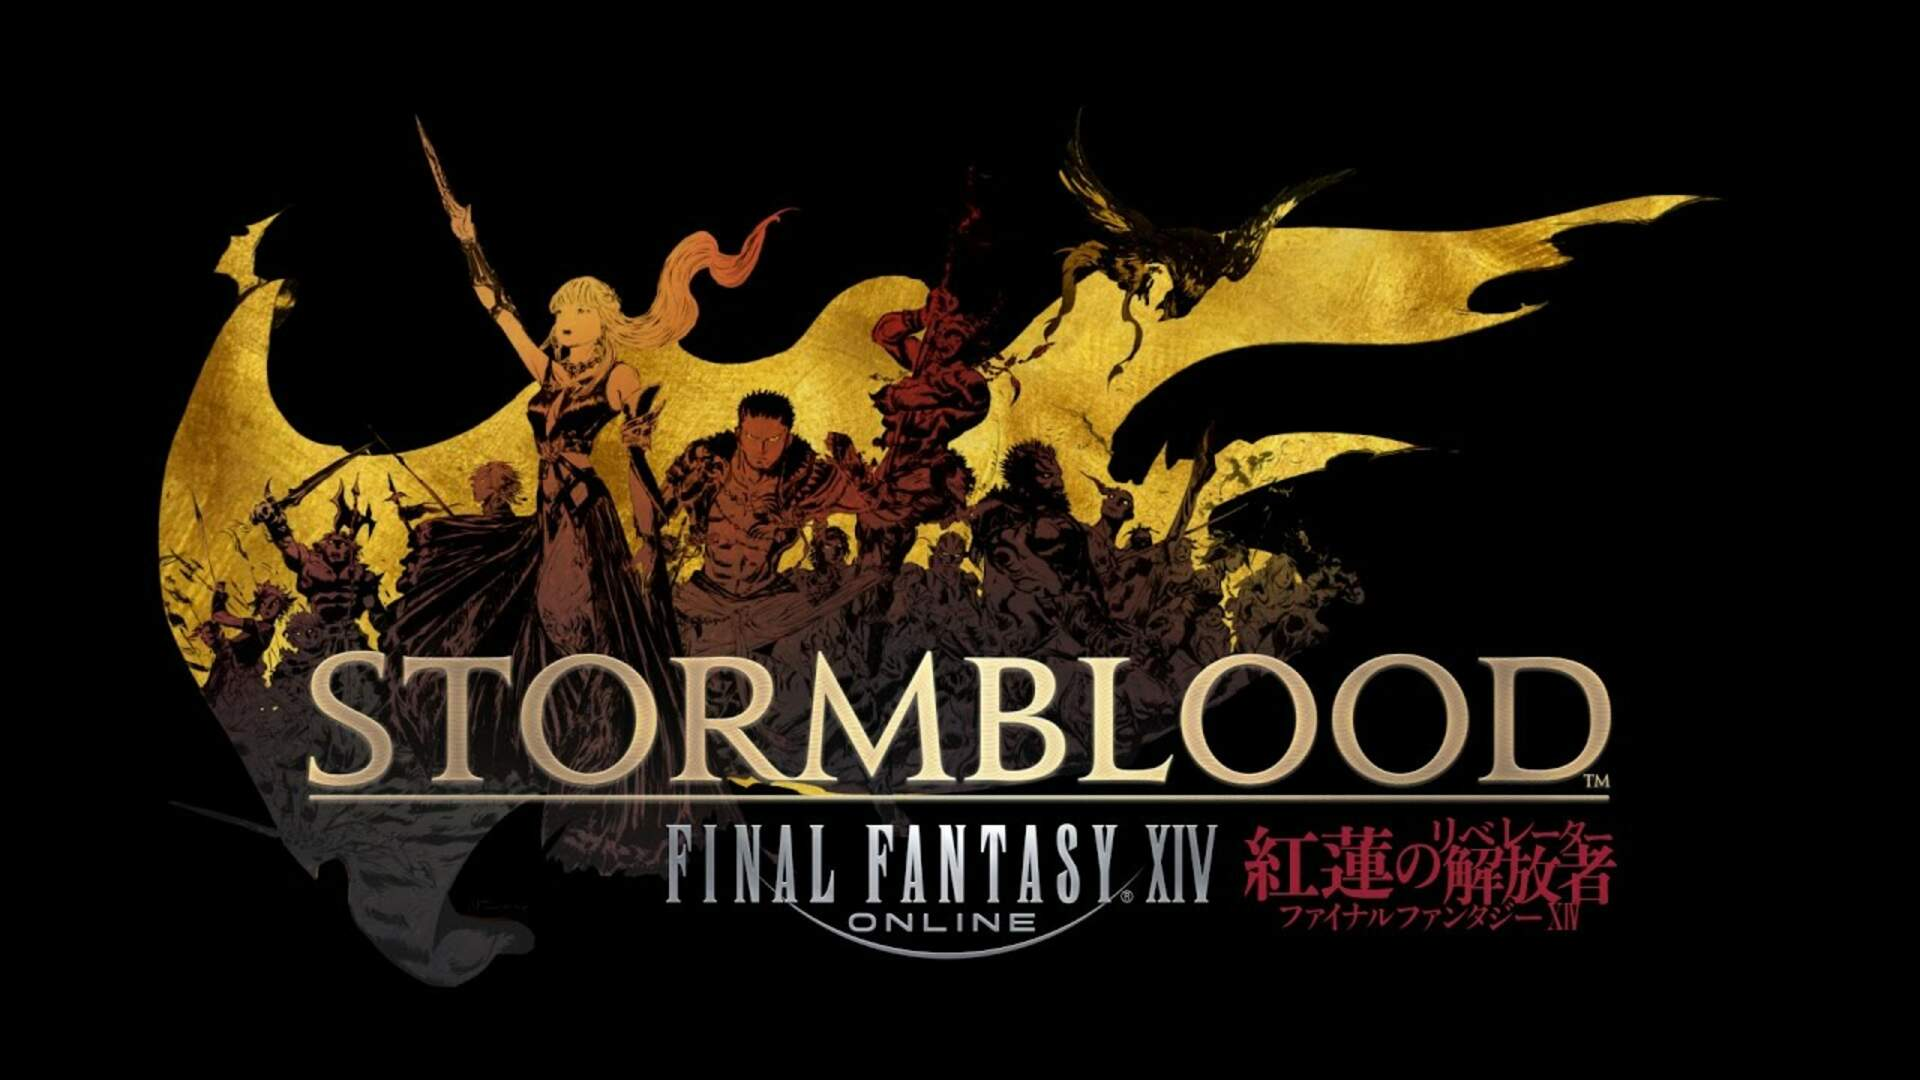 Final Fantasy XIV is Under a DDoS Attack